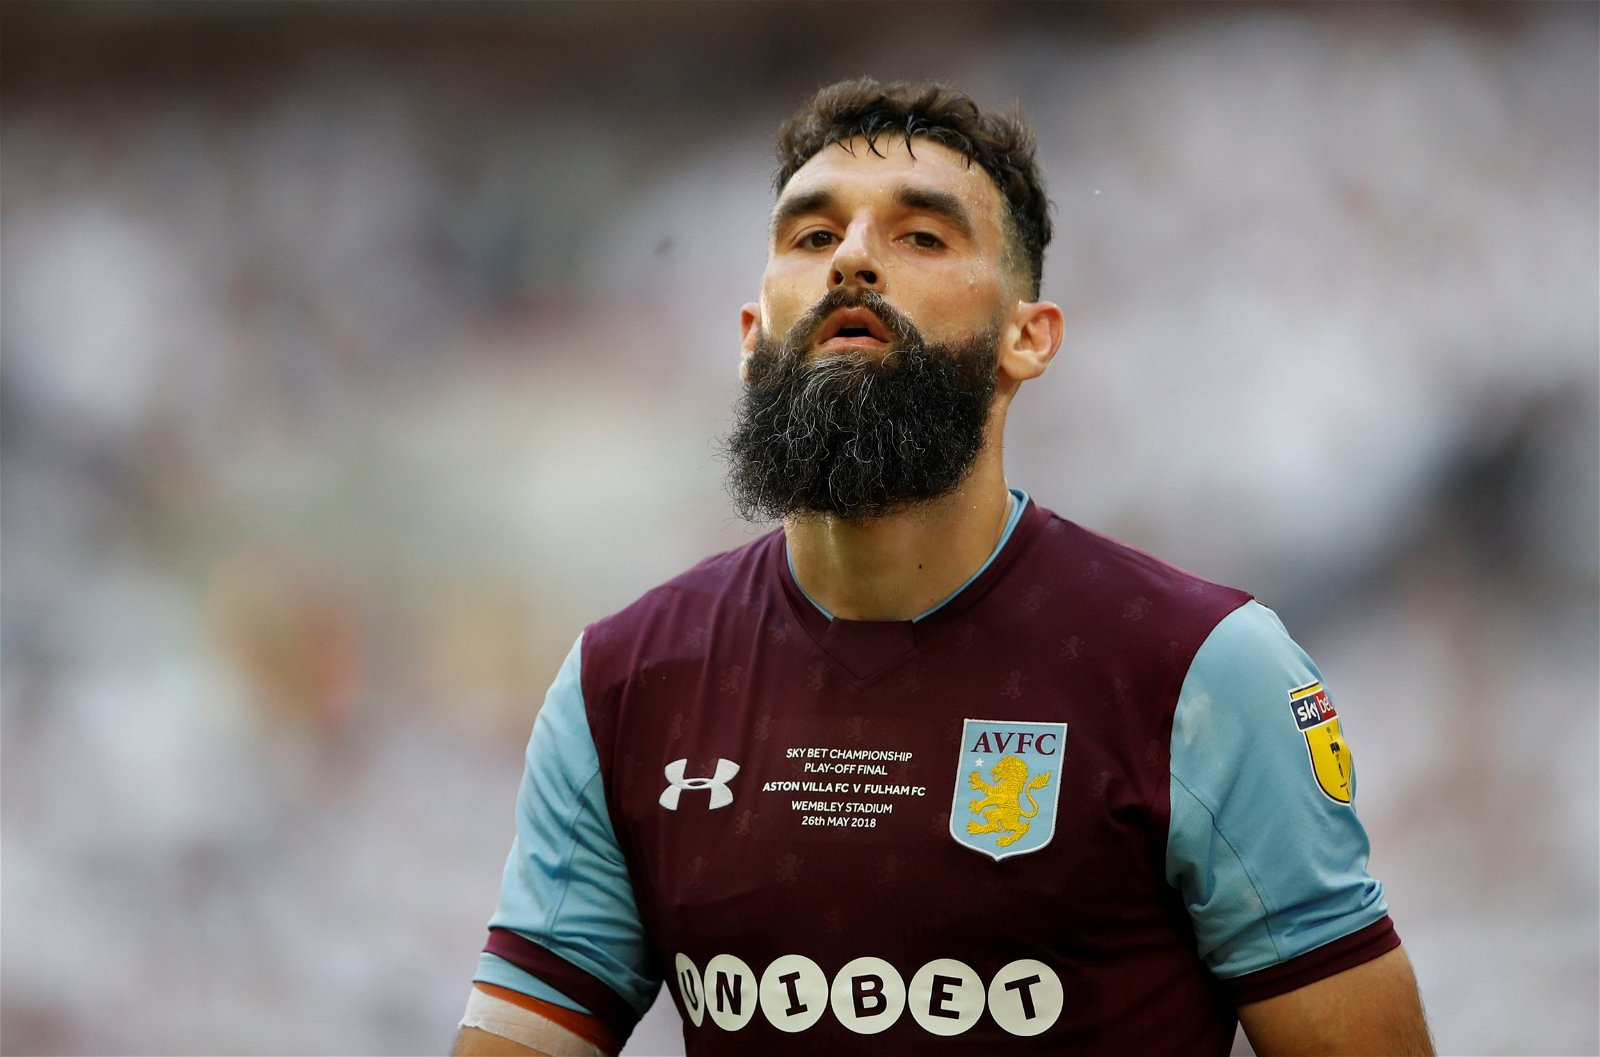 Jedinak Aston Villa - 29-goal pairing, Grealish vs Tomori: Where Aston Villa vs Derby will be won and lost